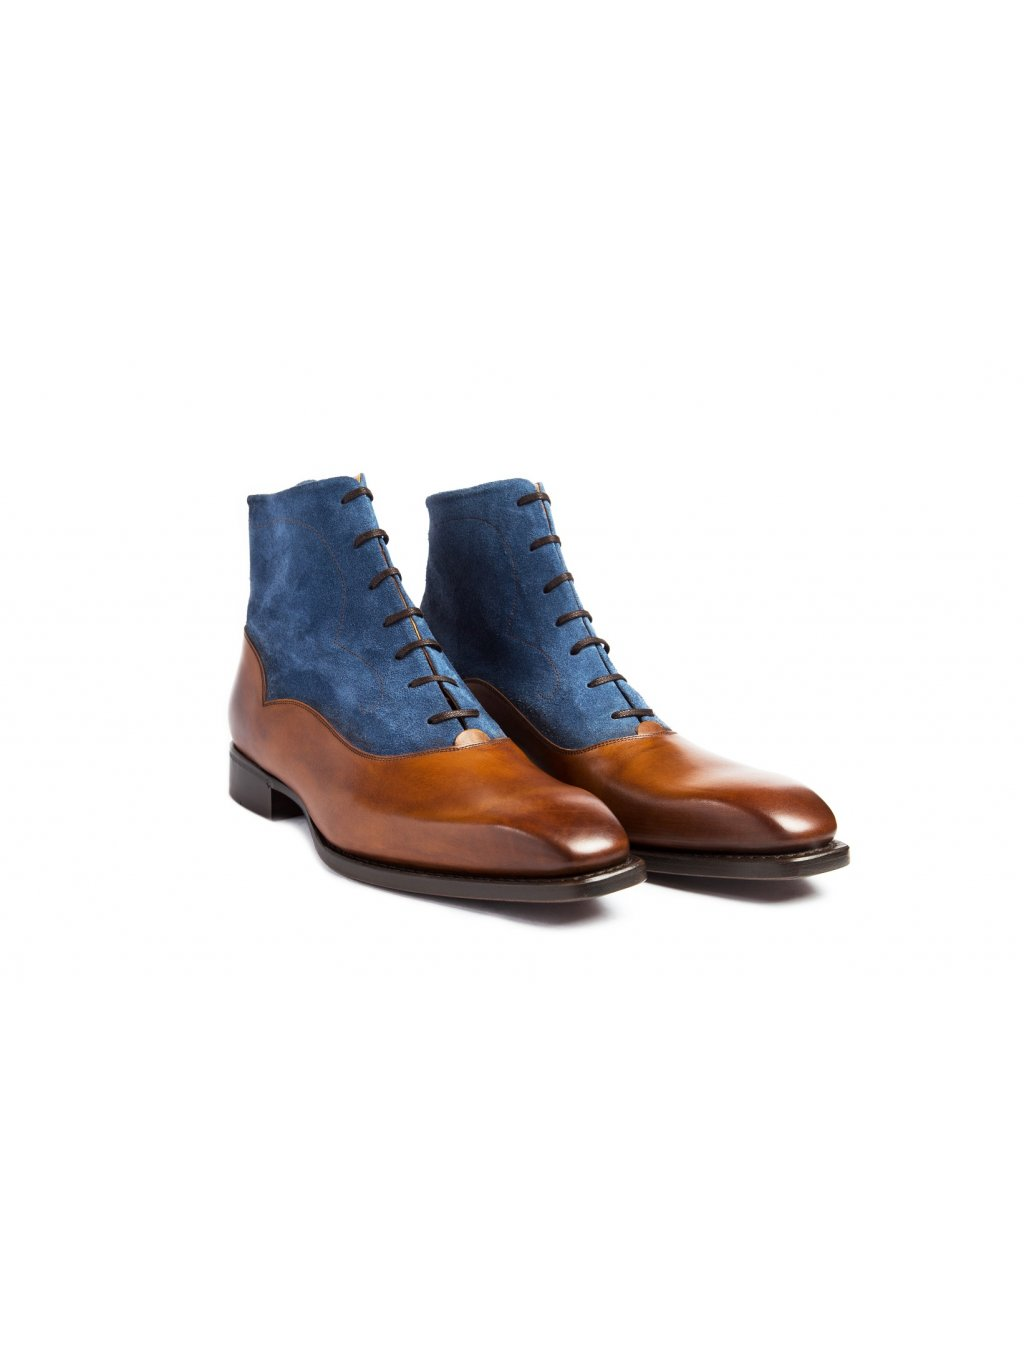 Boty boots gold